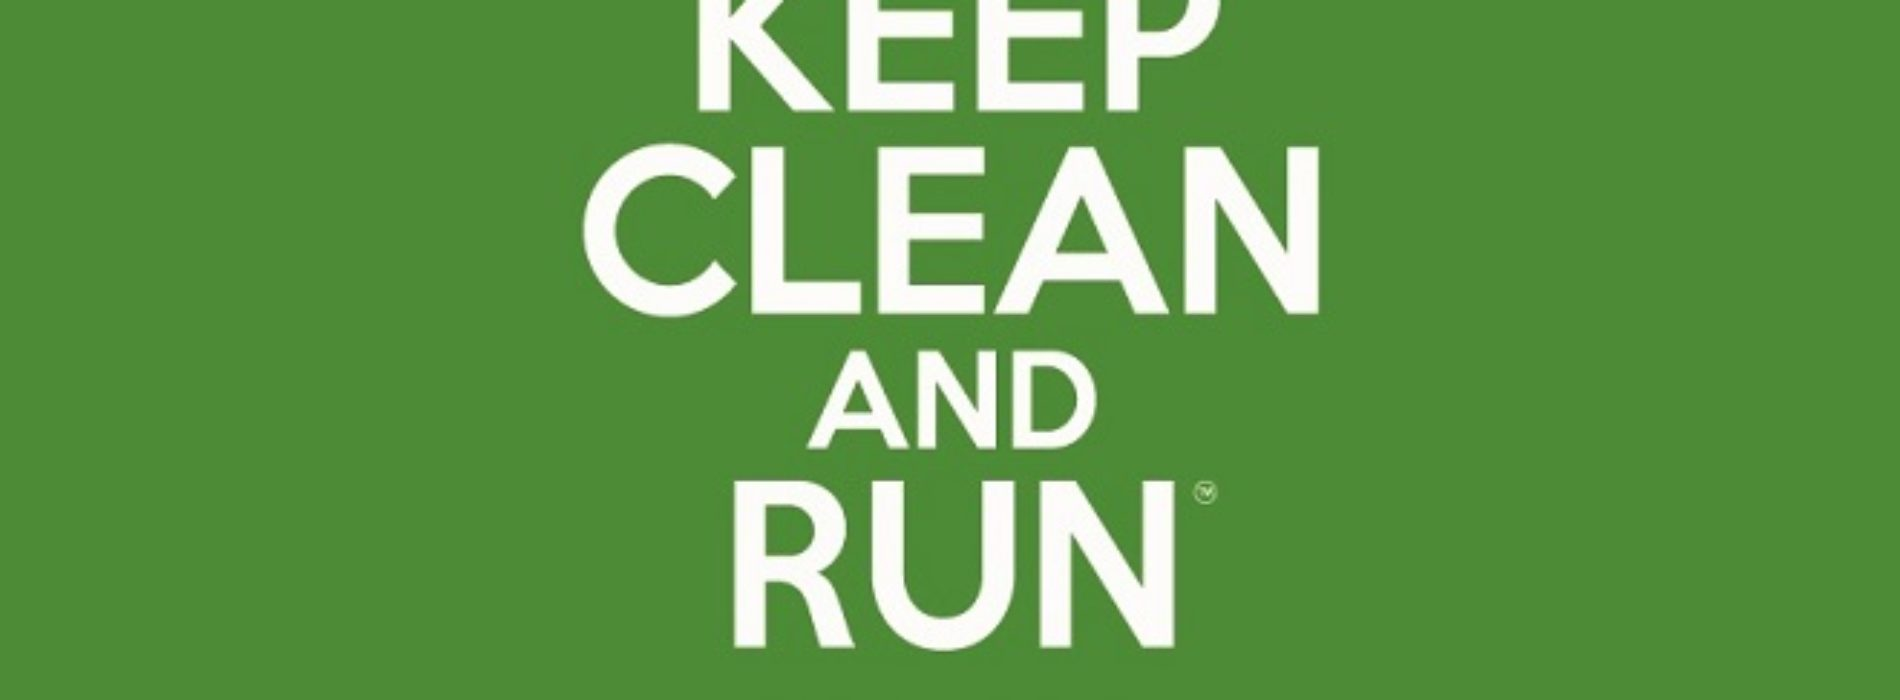 "Terza edizione per ""Keep Clean and Run"""